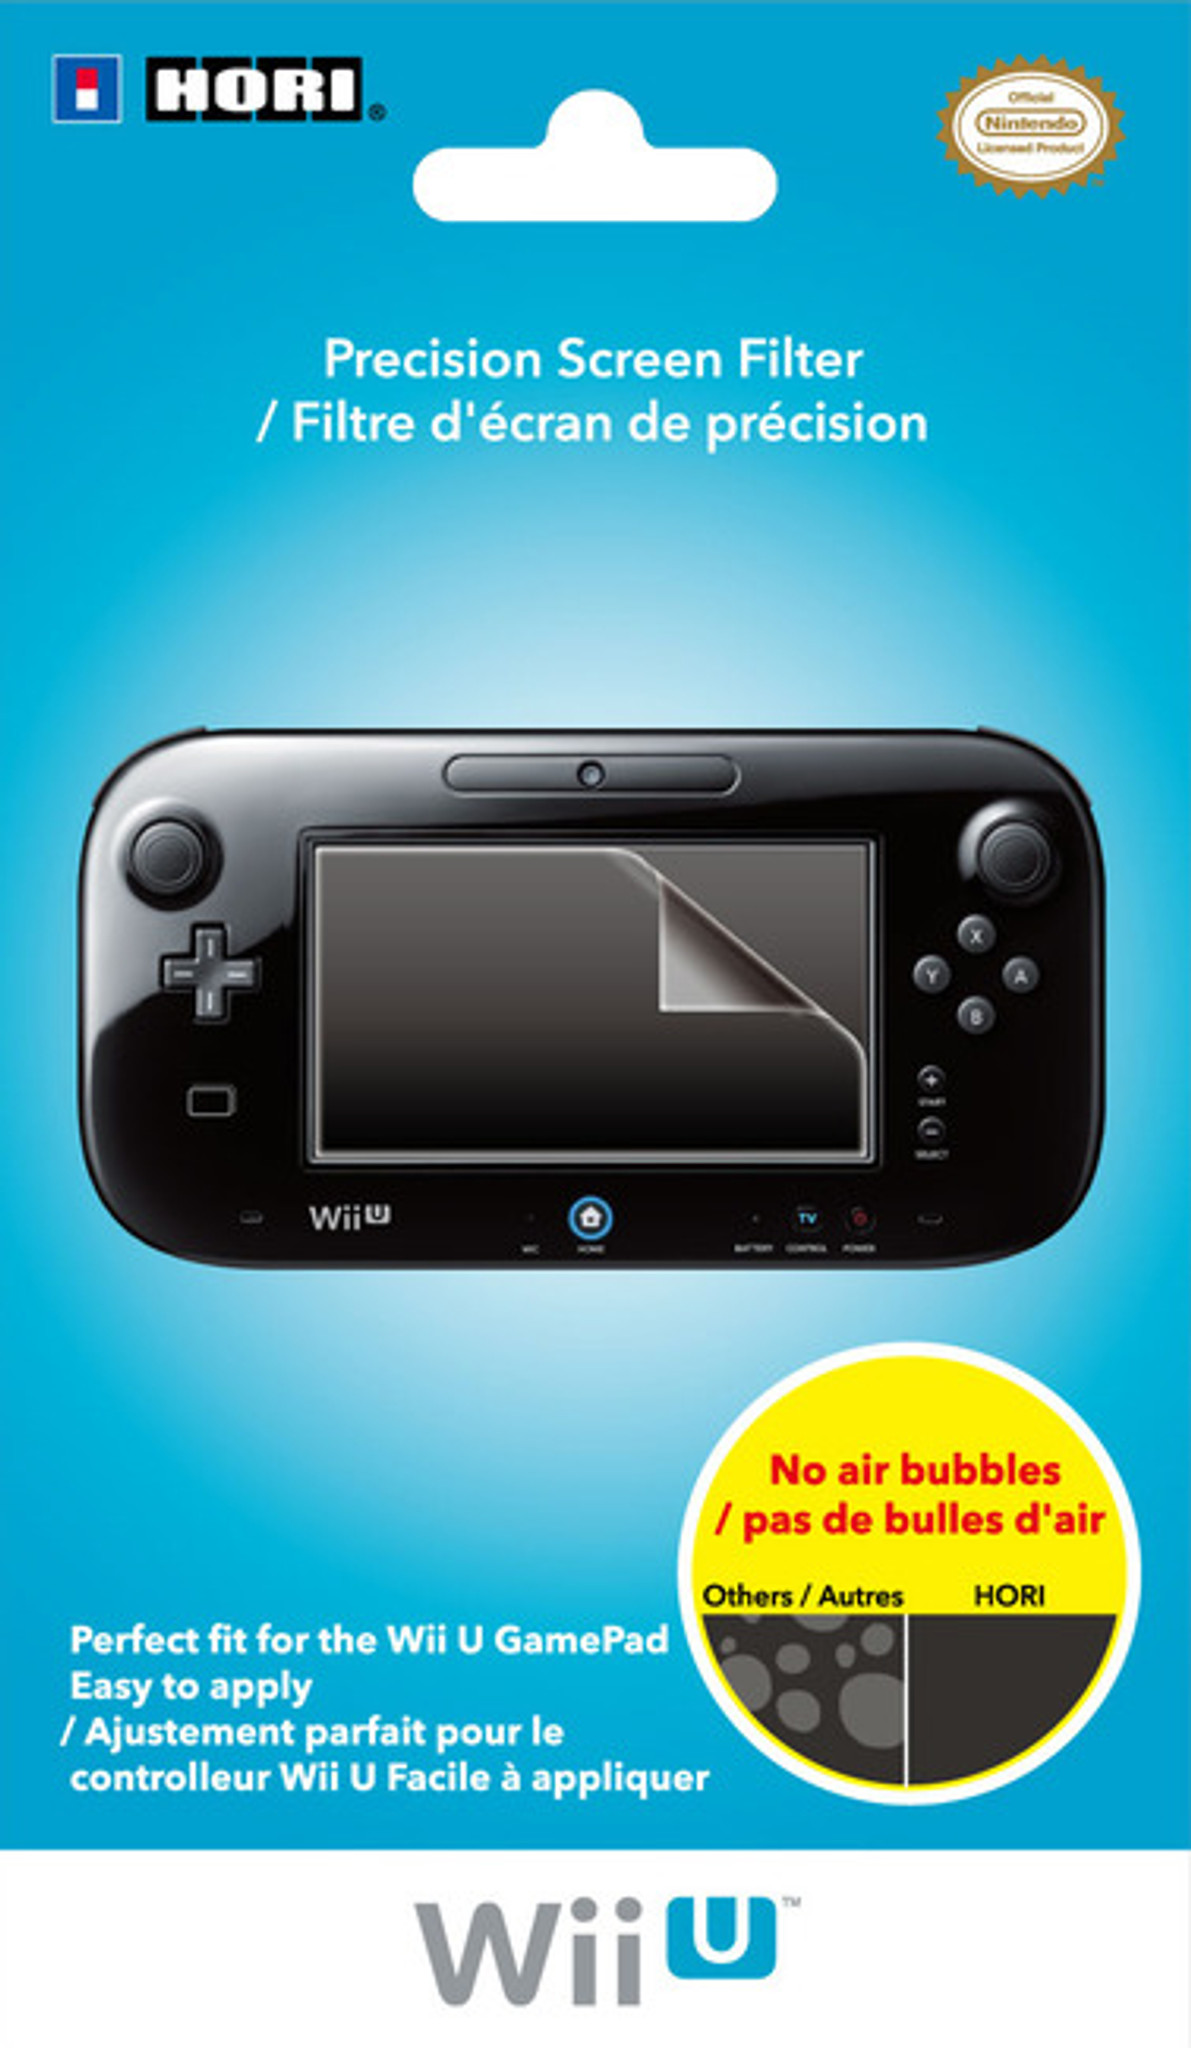 Wii U Precision Screen Filter